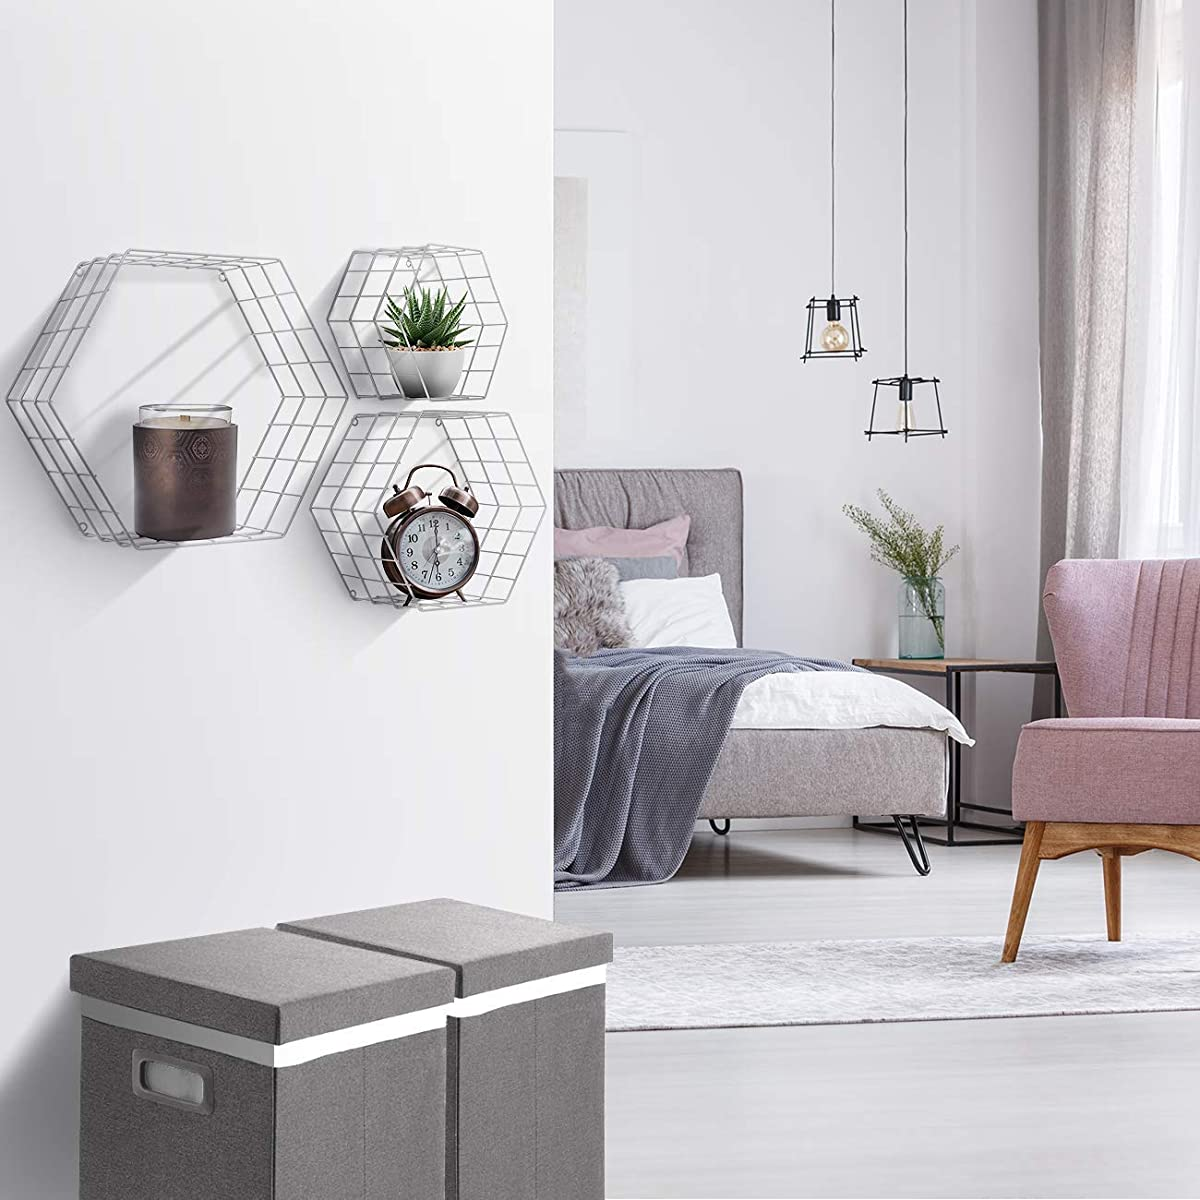 Sorbus Floating Hexagon Shelves - Wall-Mounted Geometric Metal Wall Décor for Photos, Collectibles, Plants, and More (Metal Hexagon - White)